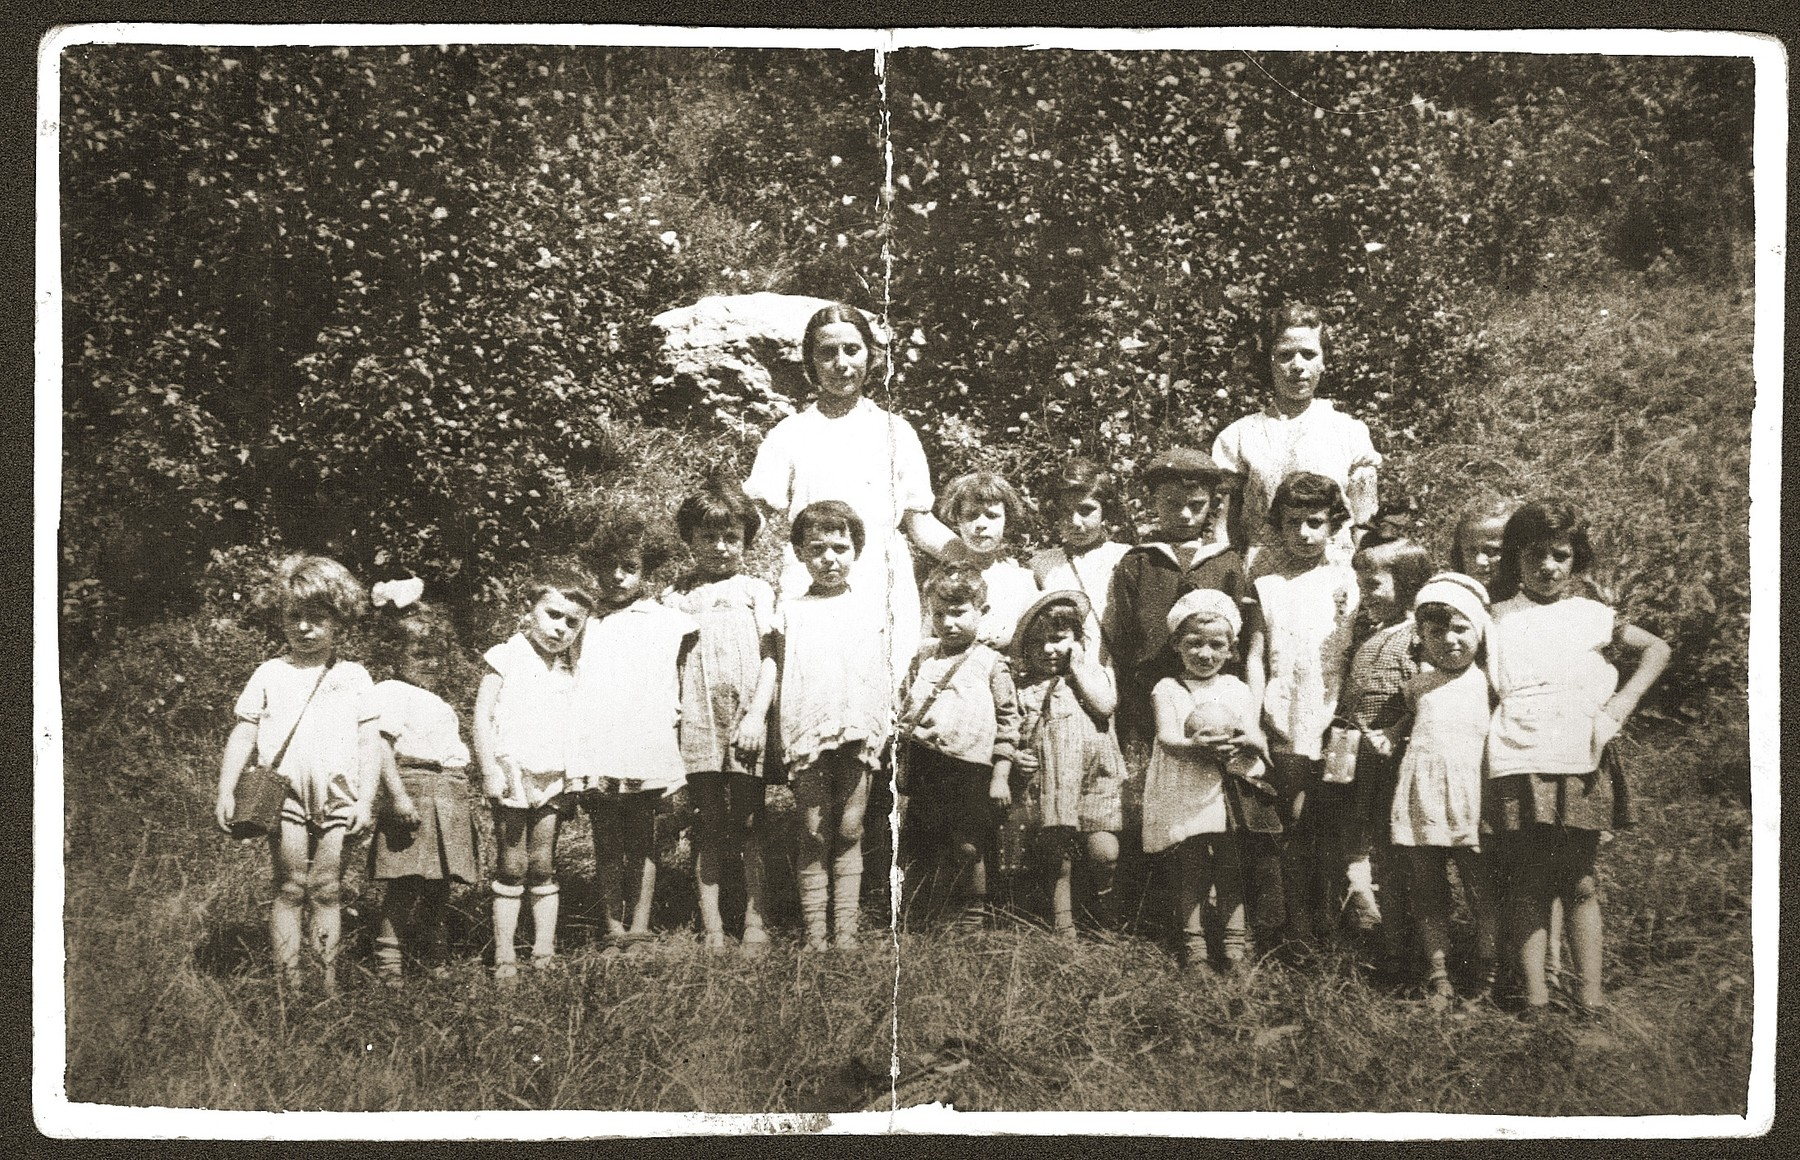 Group portrait of Jewish children from a Bedzin kindergarten on a school outing at the Gorka Zamkowa (Bedzin castle).    Among those pictured is Fela Fiszel (front row, first on the right).